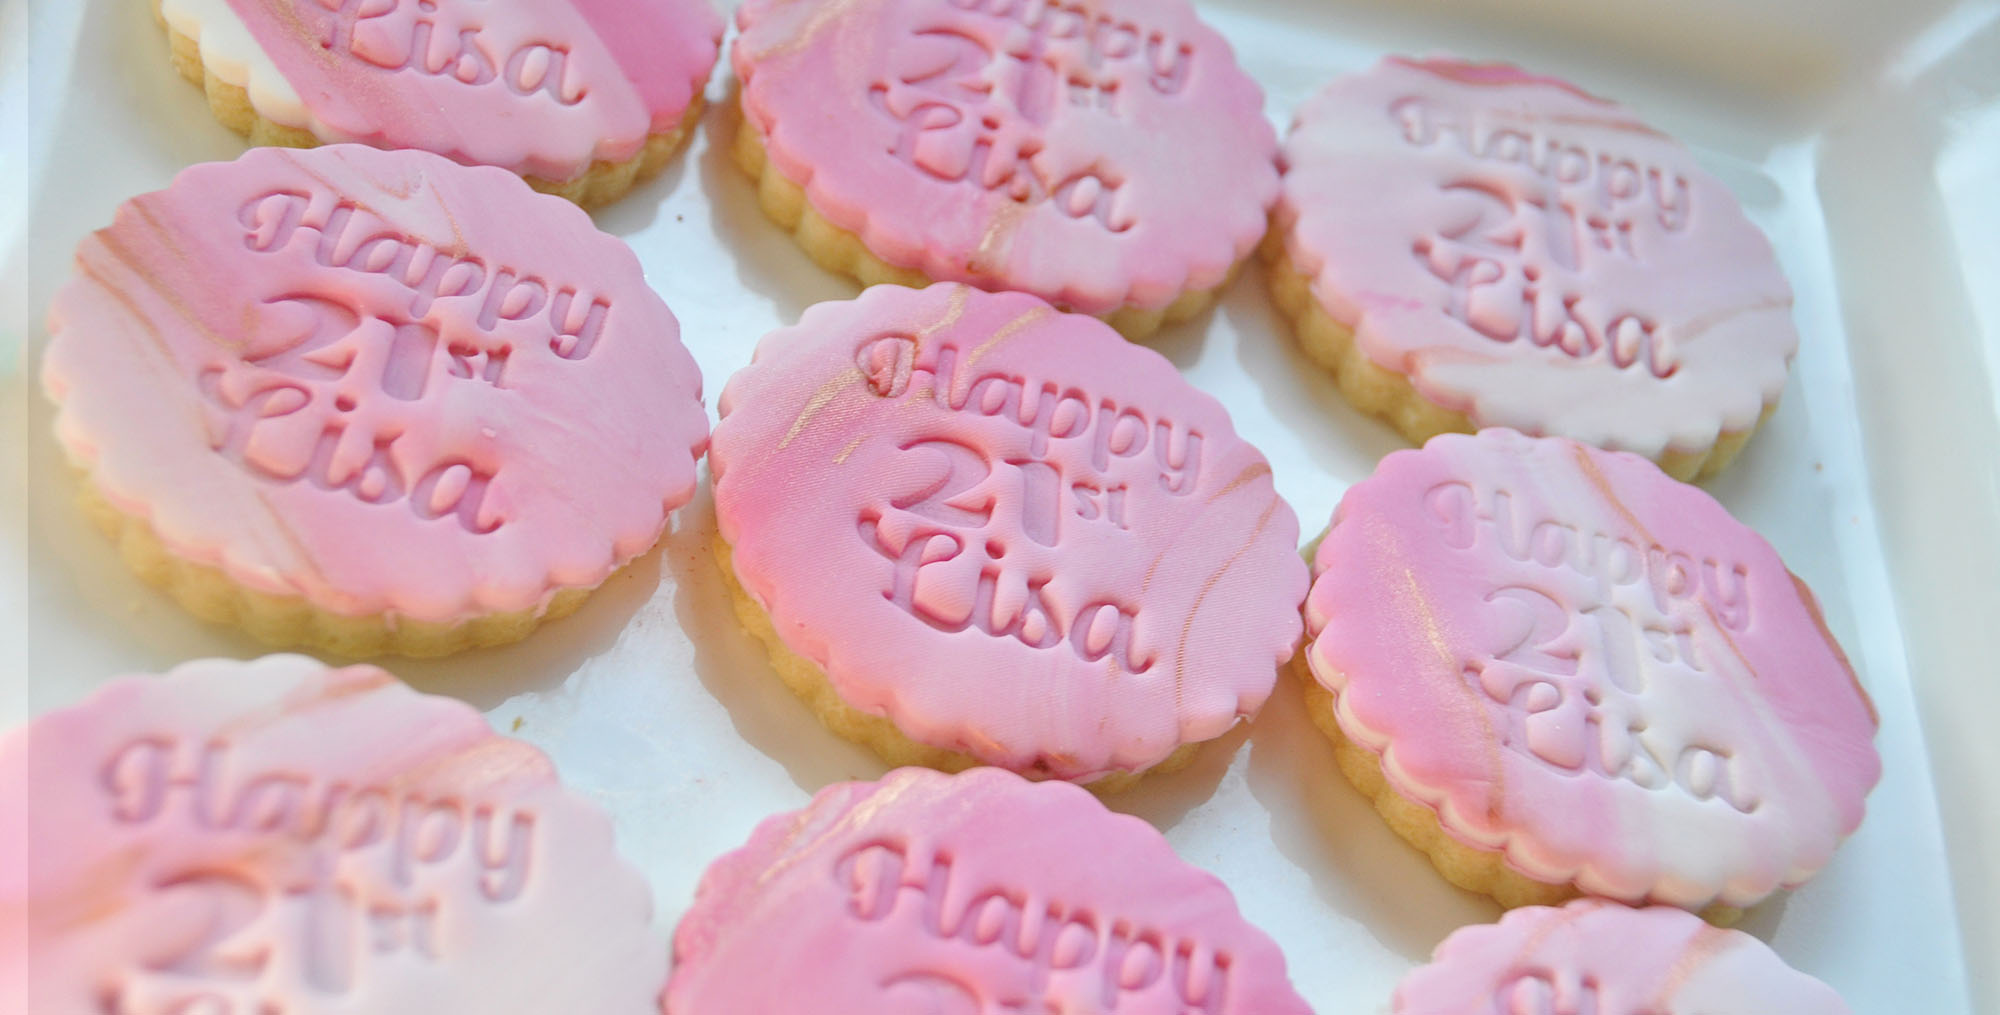 Custom personalised name stamp cookies